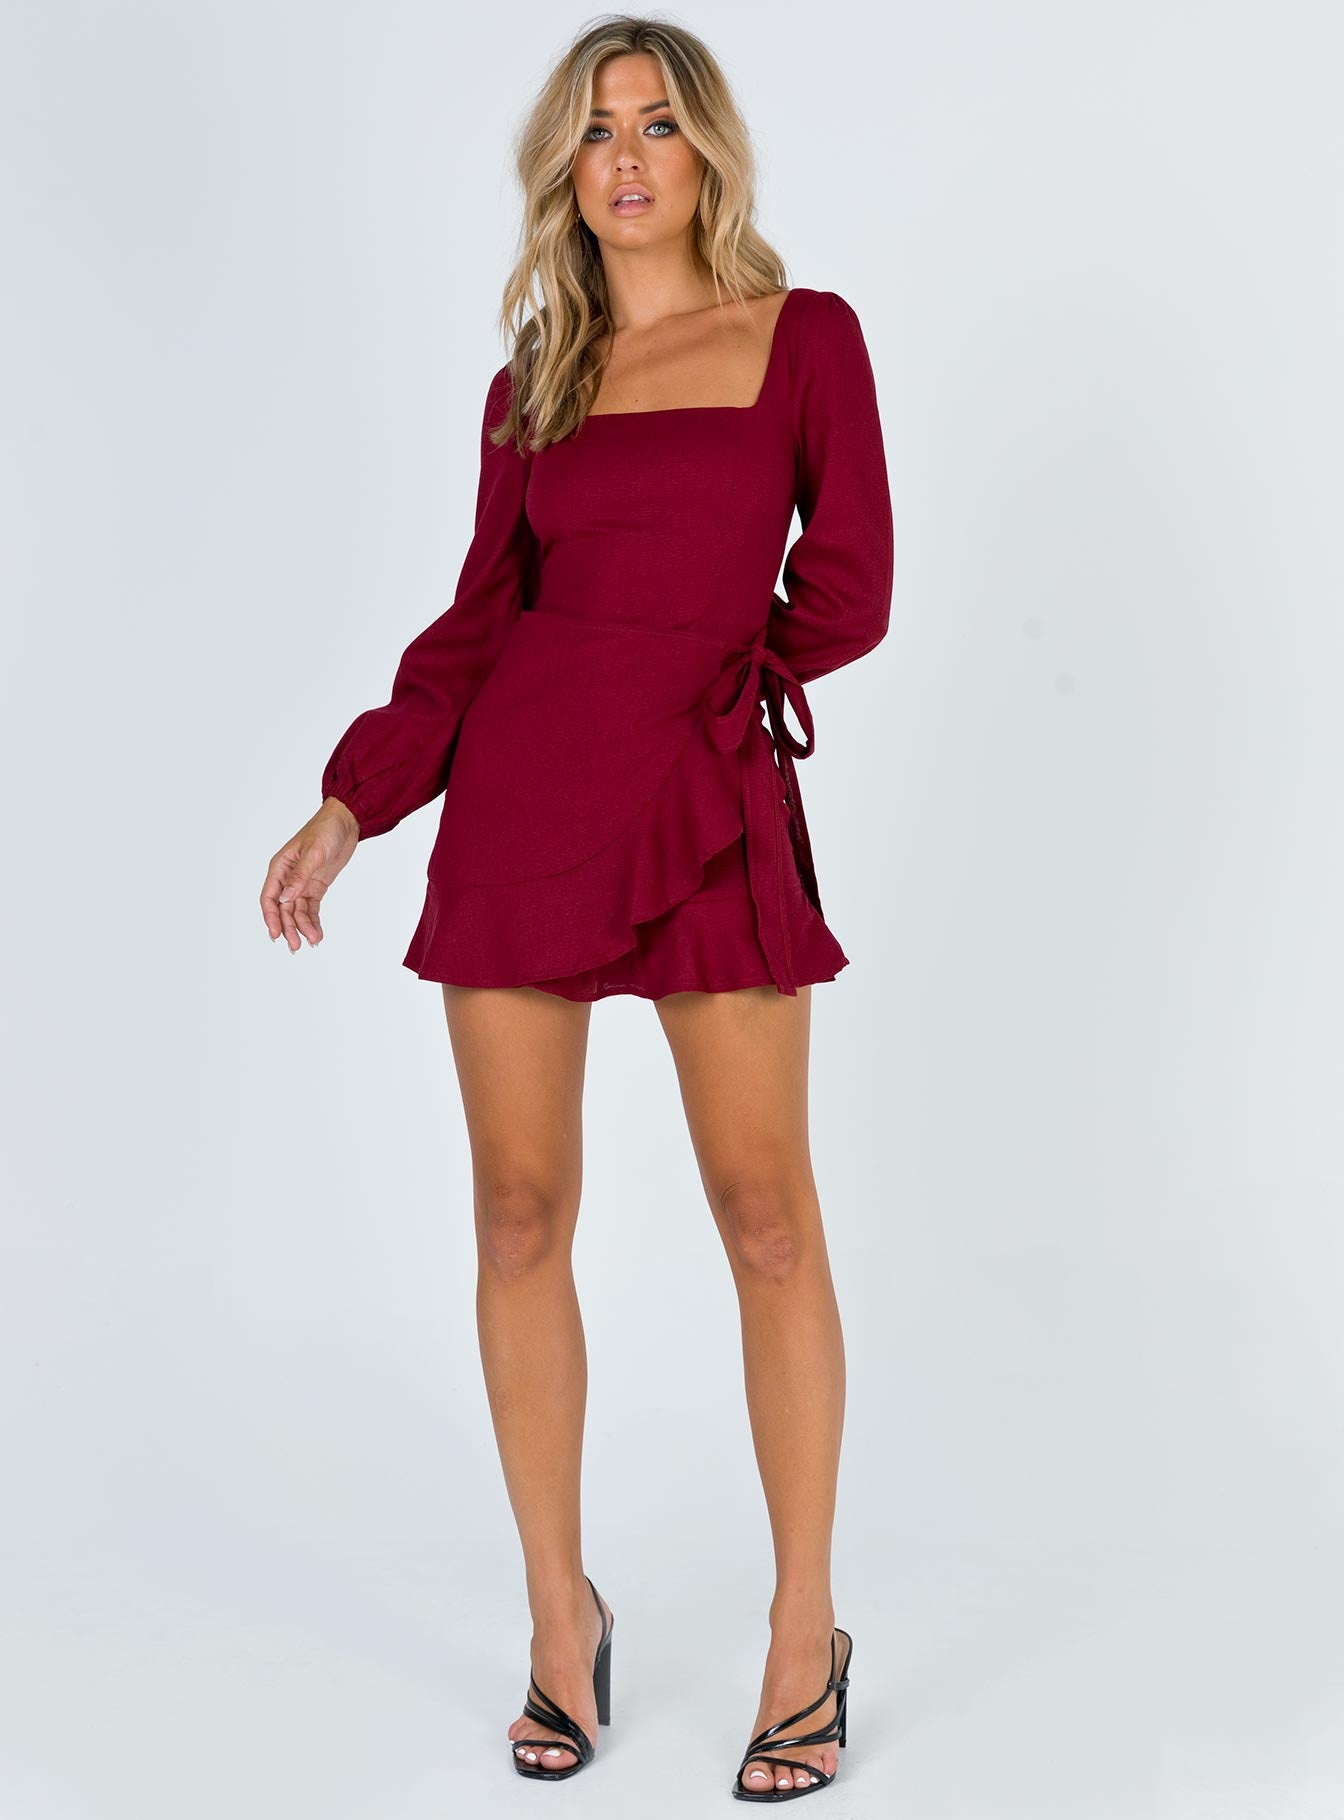 The Villa Mini Dress